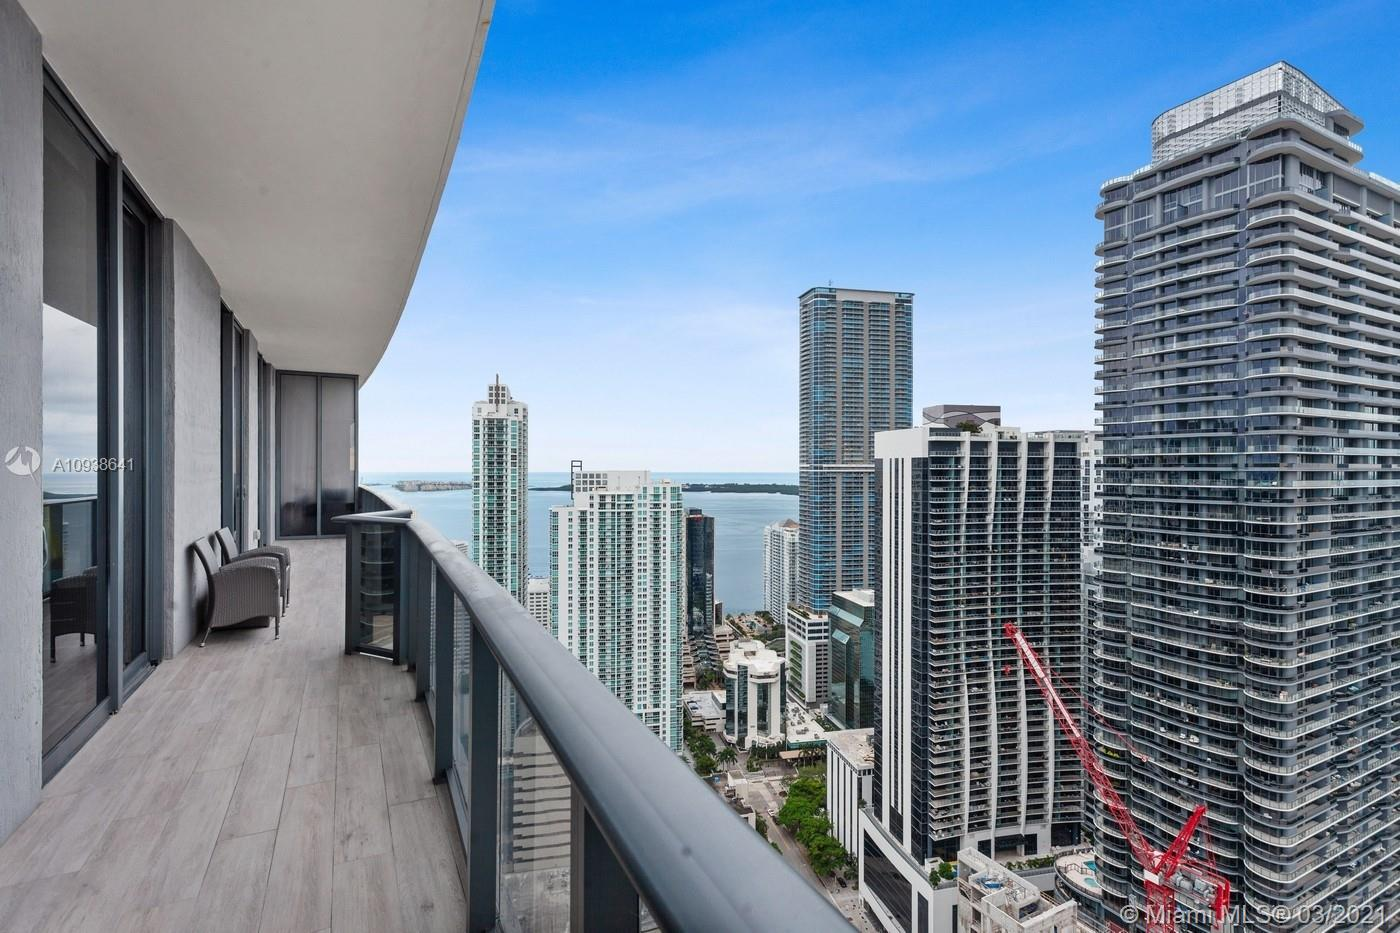 Stunning Lower Penthouse at Brickell Heights East Tower, featuring 3 Bedrooms Plus Convertible Den, 4 full bathrooms, breathtaking views across Biscayne Bay and Miami Skyline, Floor to ceiling windows, 32 x32 porcelain tile, expansive balcony, spacious Laundry Room, and 3 parking spaces. Walking distance to Brickell City Center and a variety of restaurants, shops, Enjoy the Best City Lifestyle.